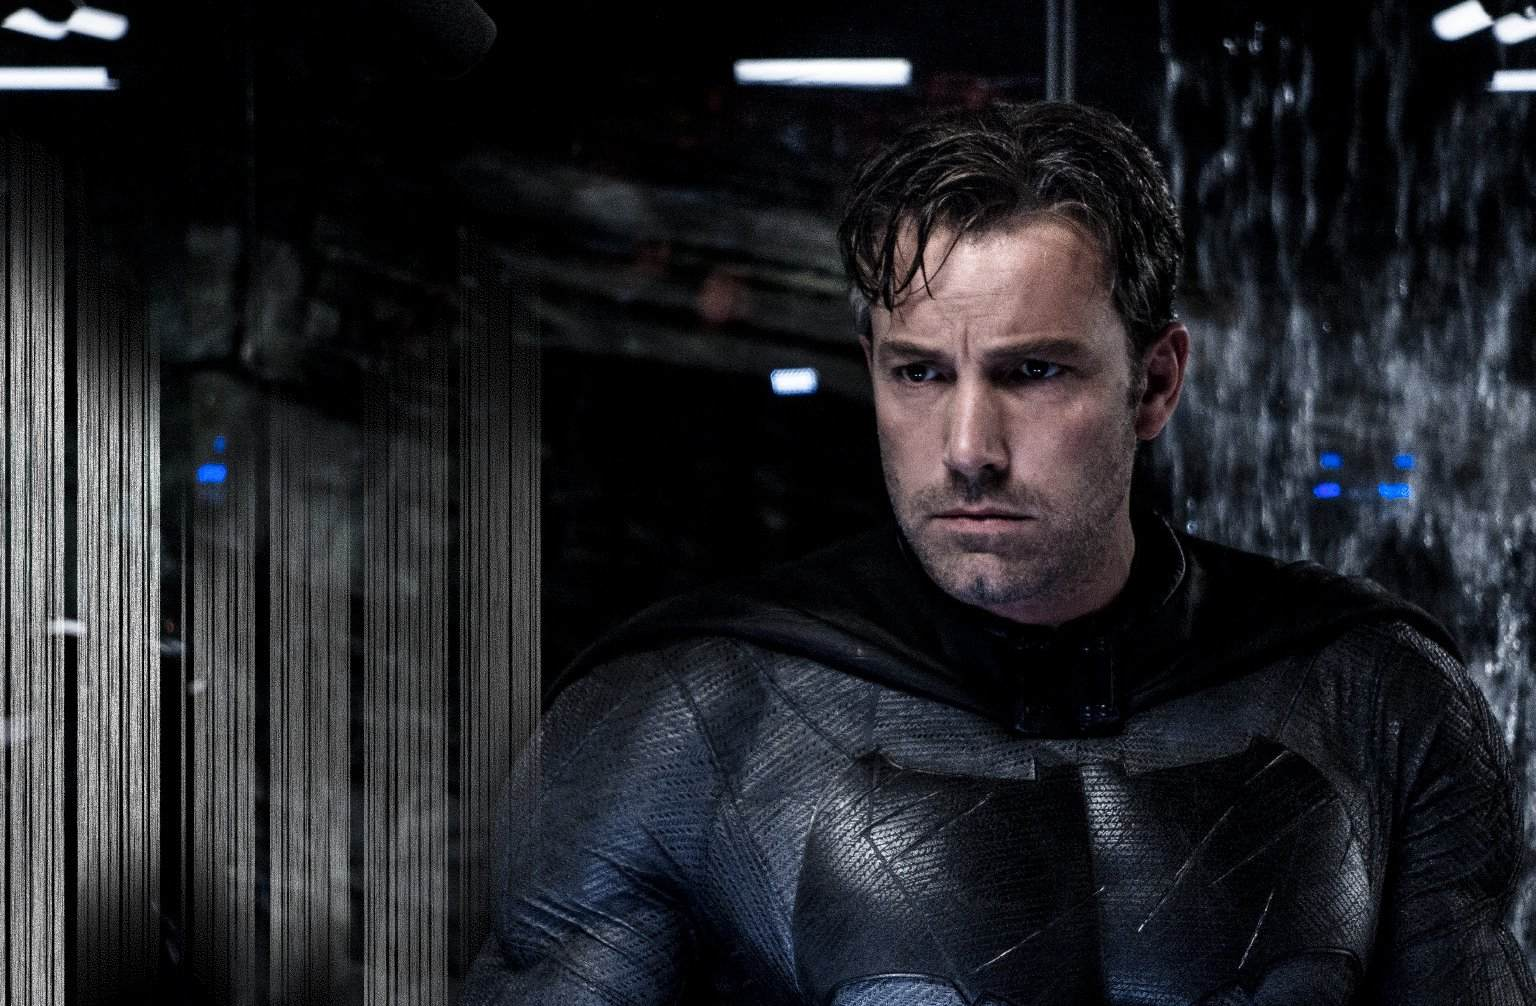 Warner Bros. confirms Ben Affleck working on Batman solo movie